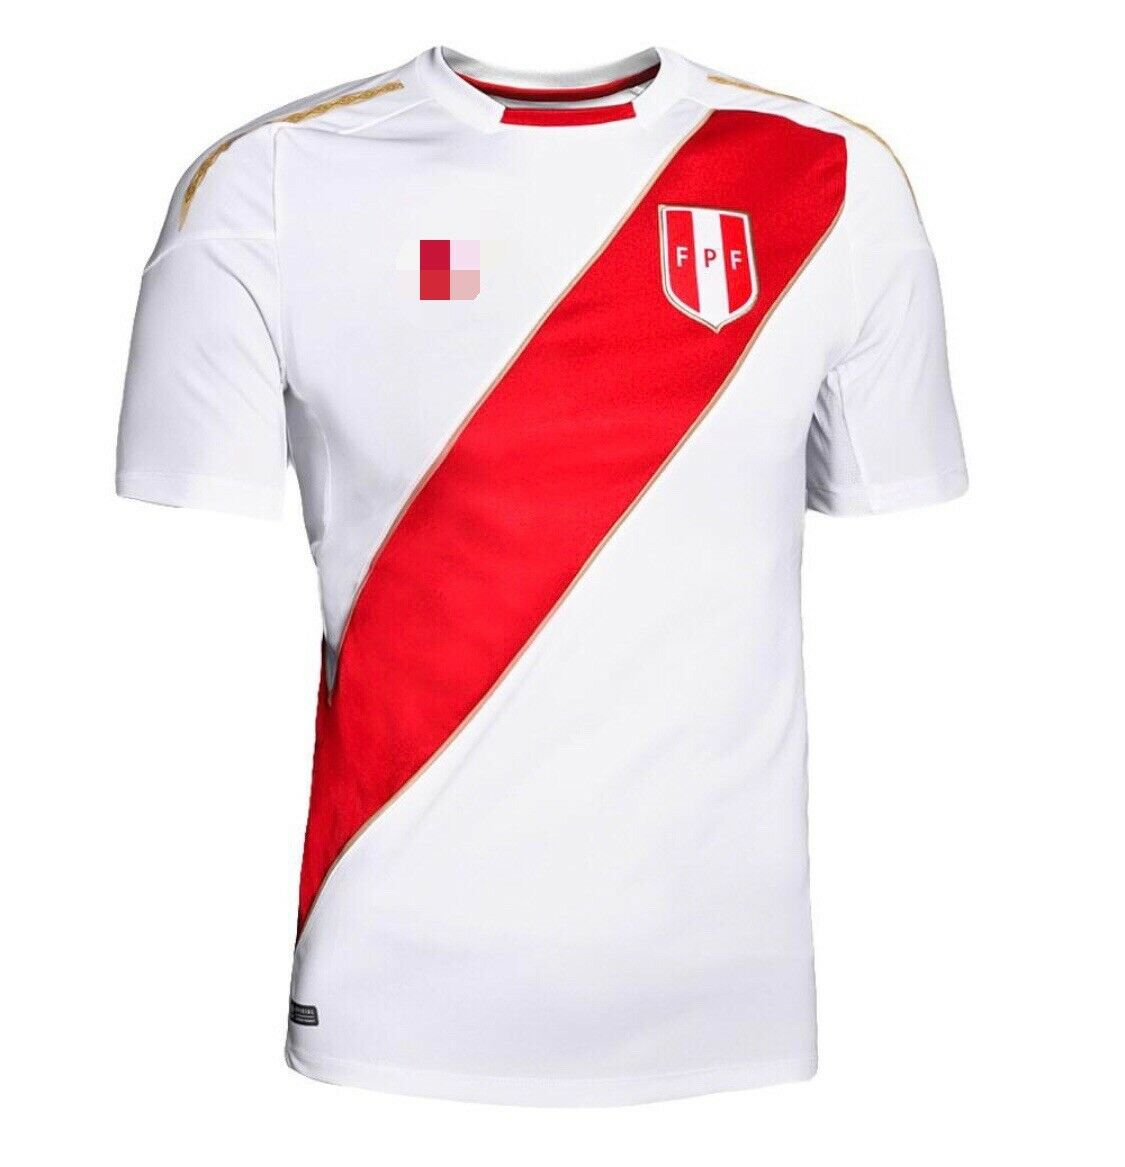 Peru Soccer Jersey 2018 - Please ask for size before purchasing. Preguntar